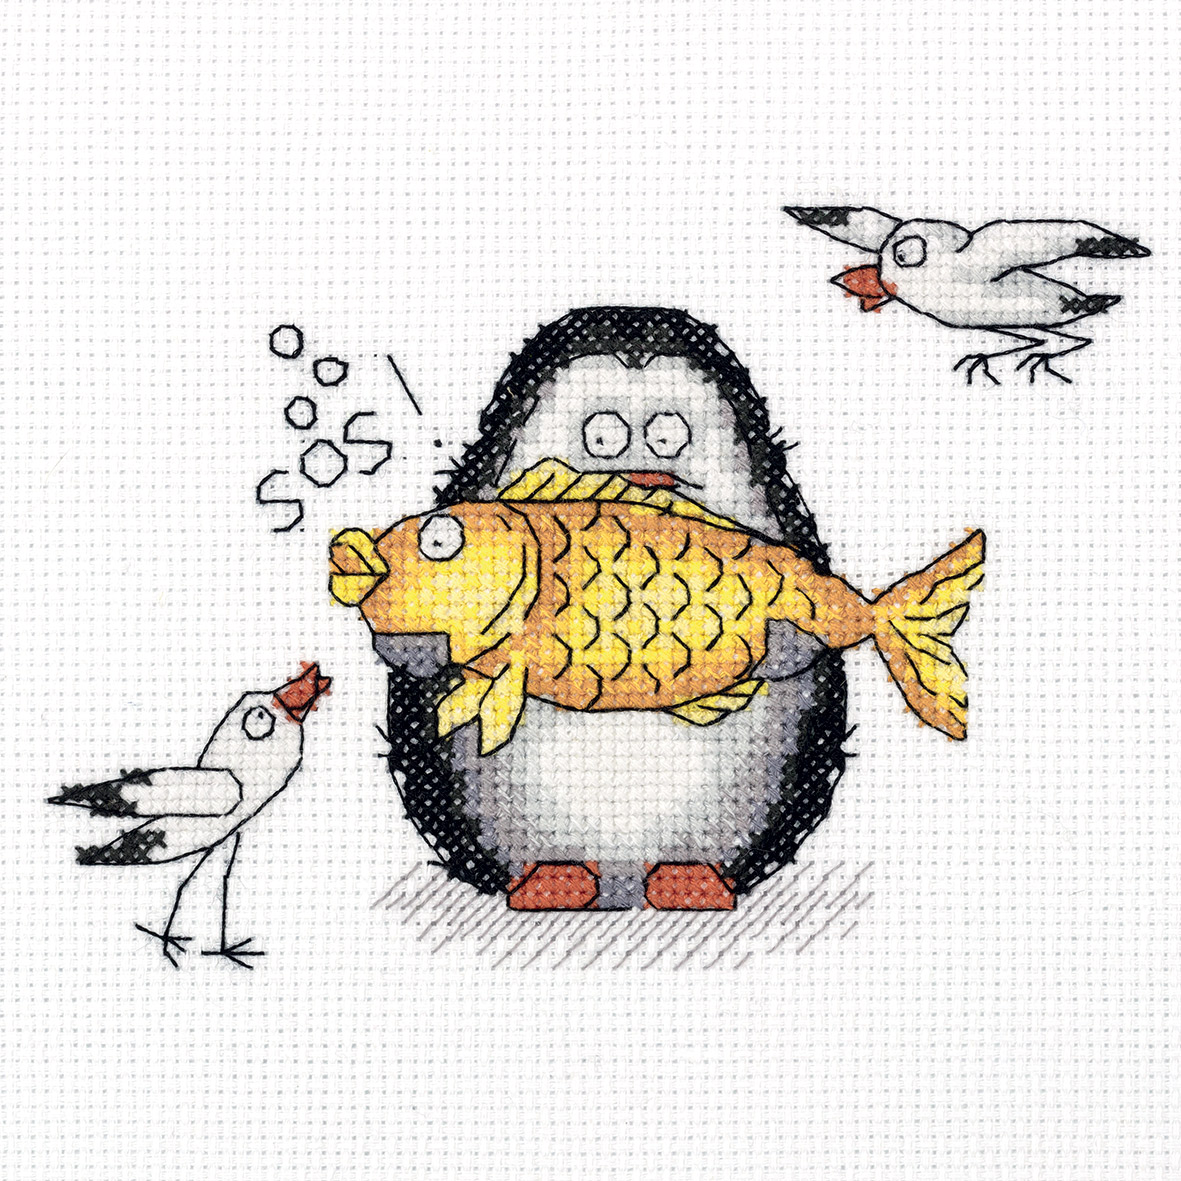 Embroidery kits PANNA 8-284 Antarctic Fisherman